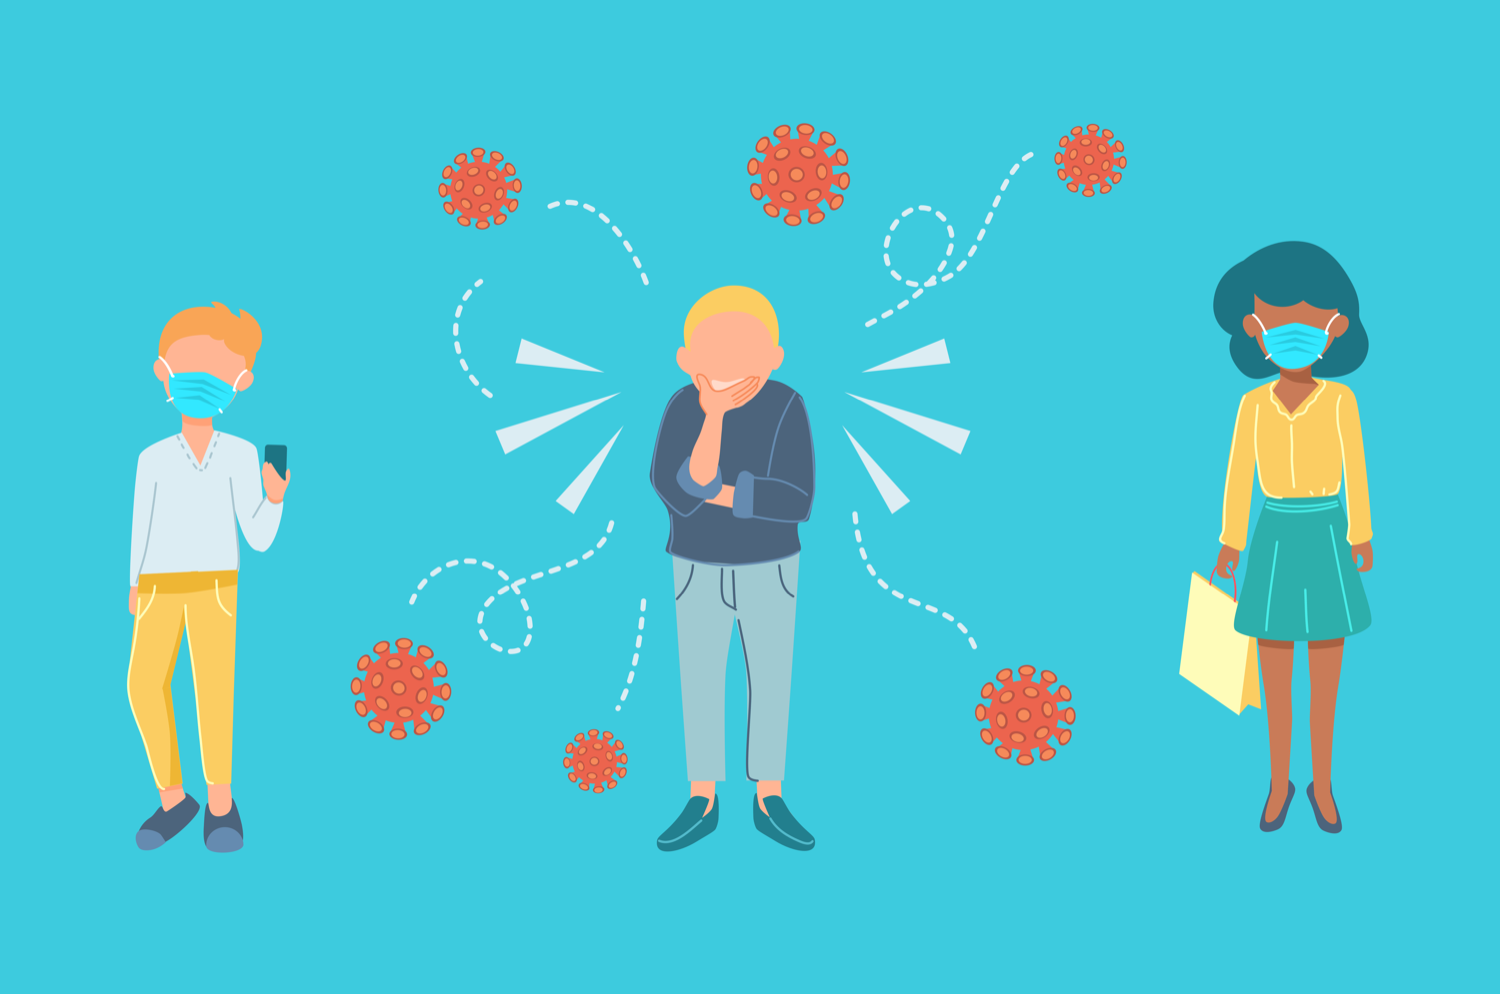 illustration of three people, the one in the center coughing, expelling virus particles, while the two people on either side wearing masks